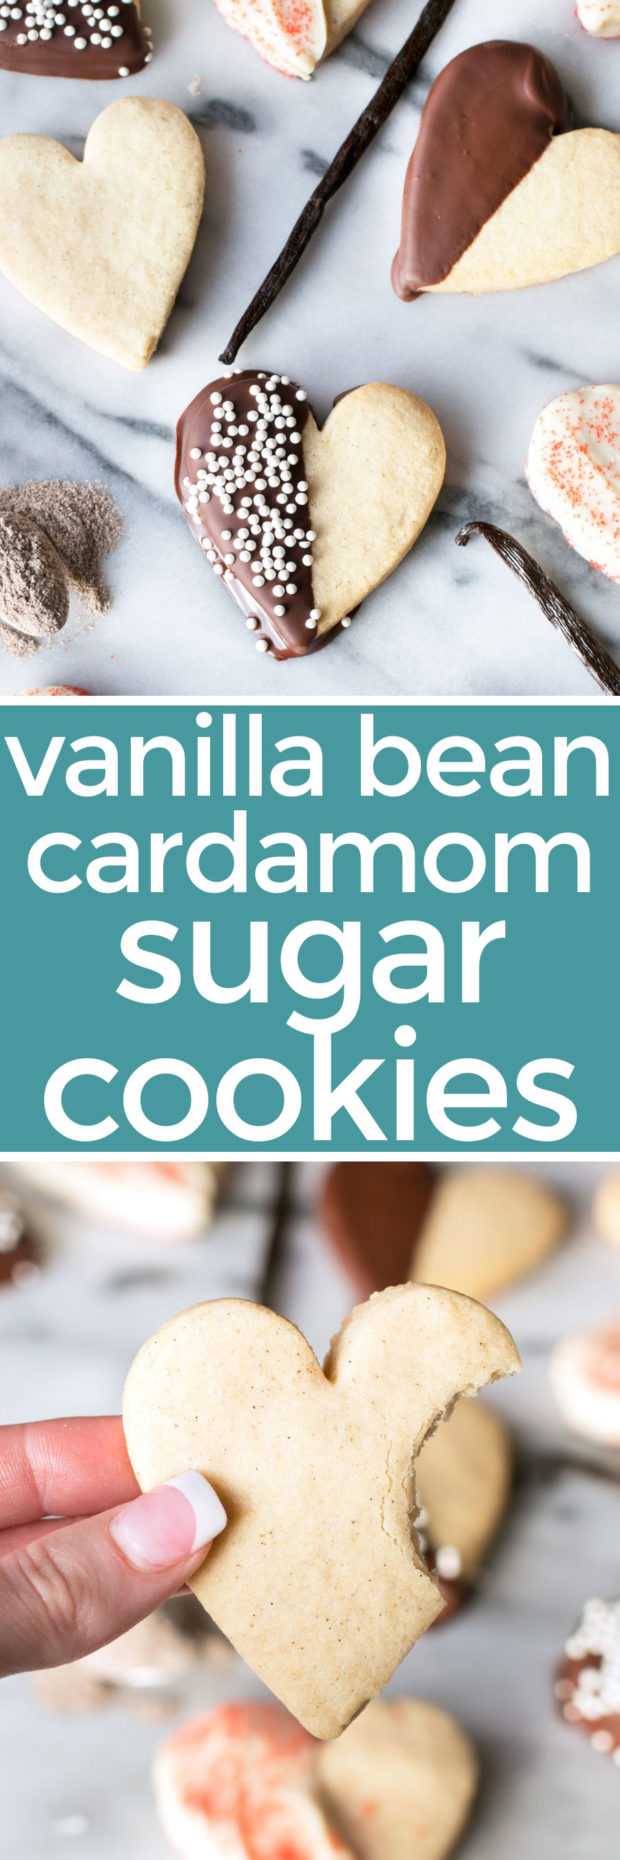 I could easily make these vegan! I want to try them... Vanilla Bean Cardamom Sugar Cookies – Cake 'n Knife